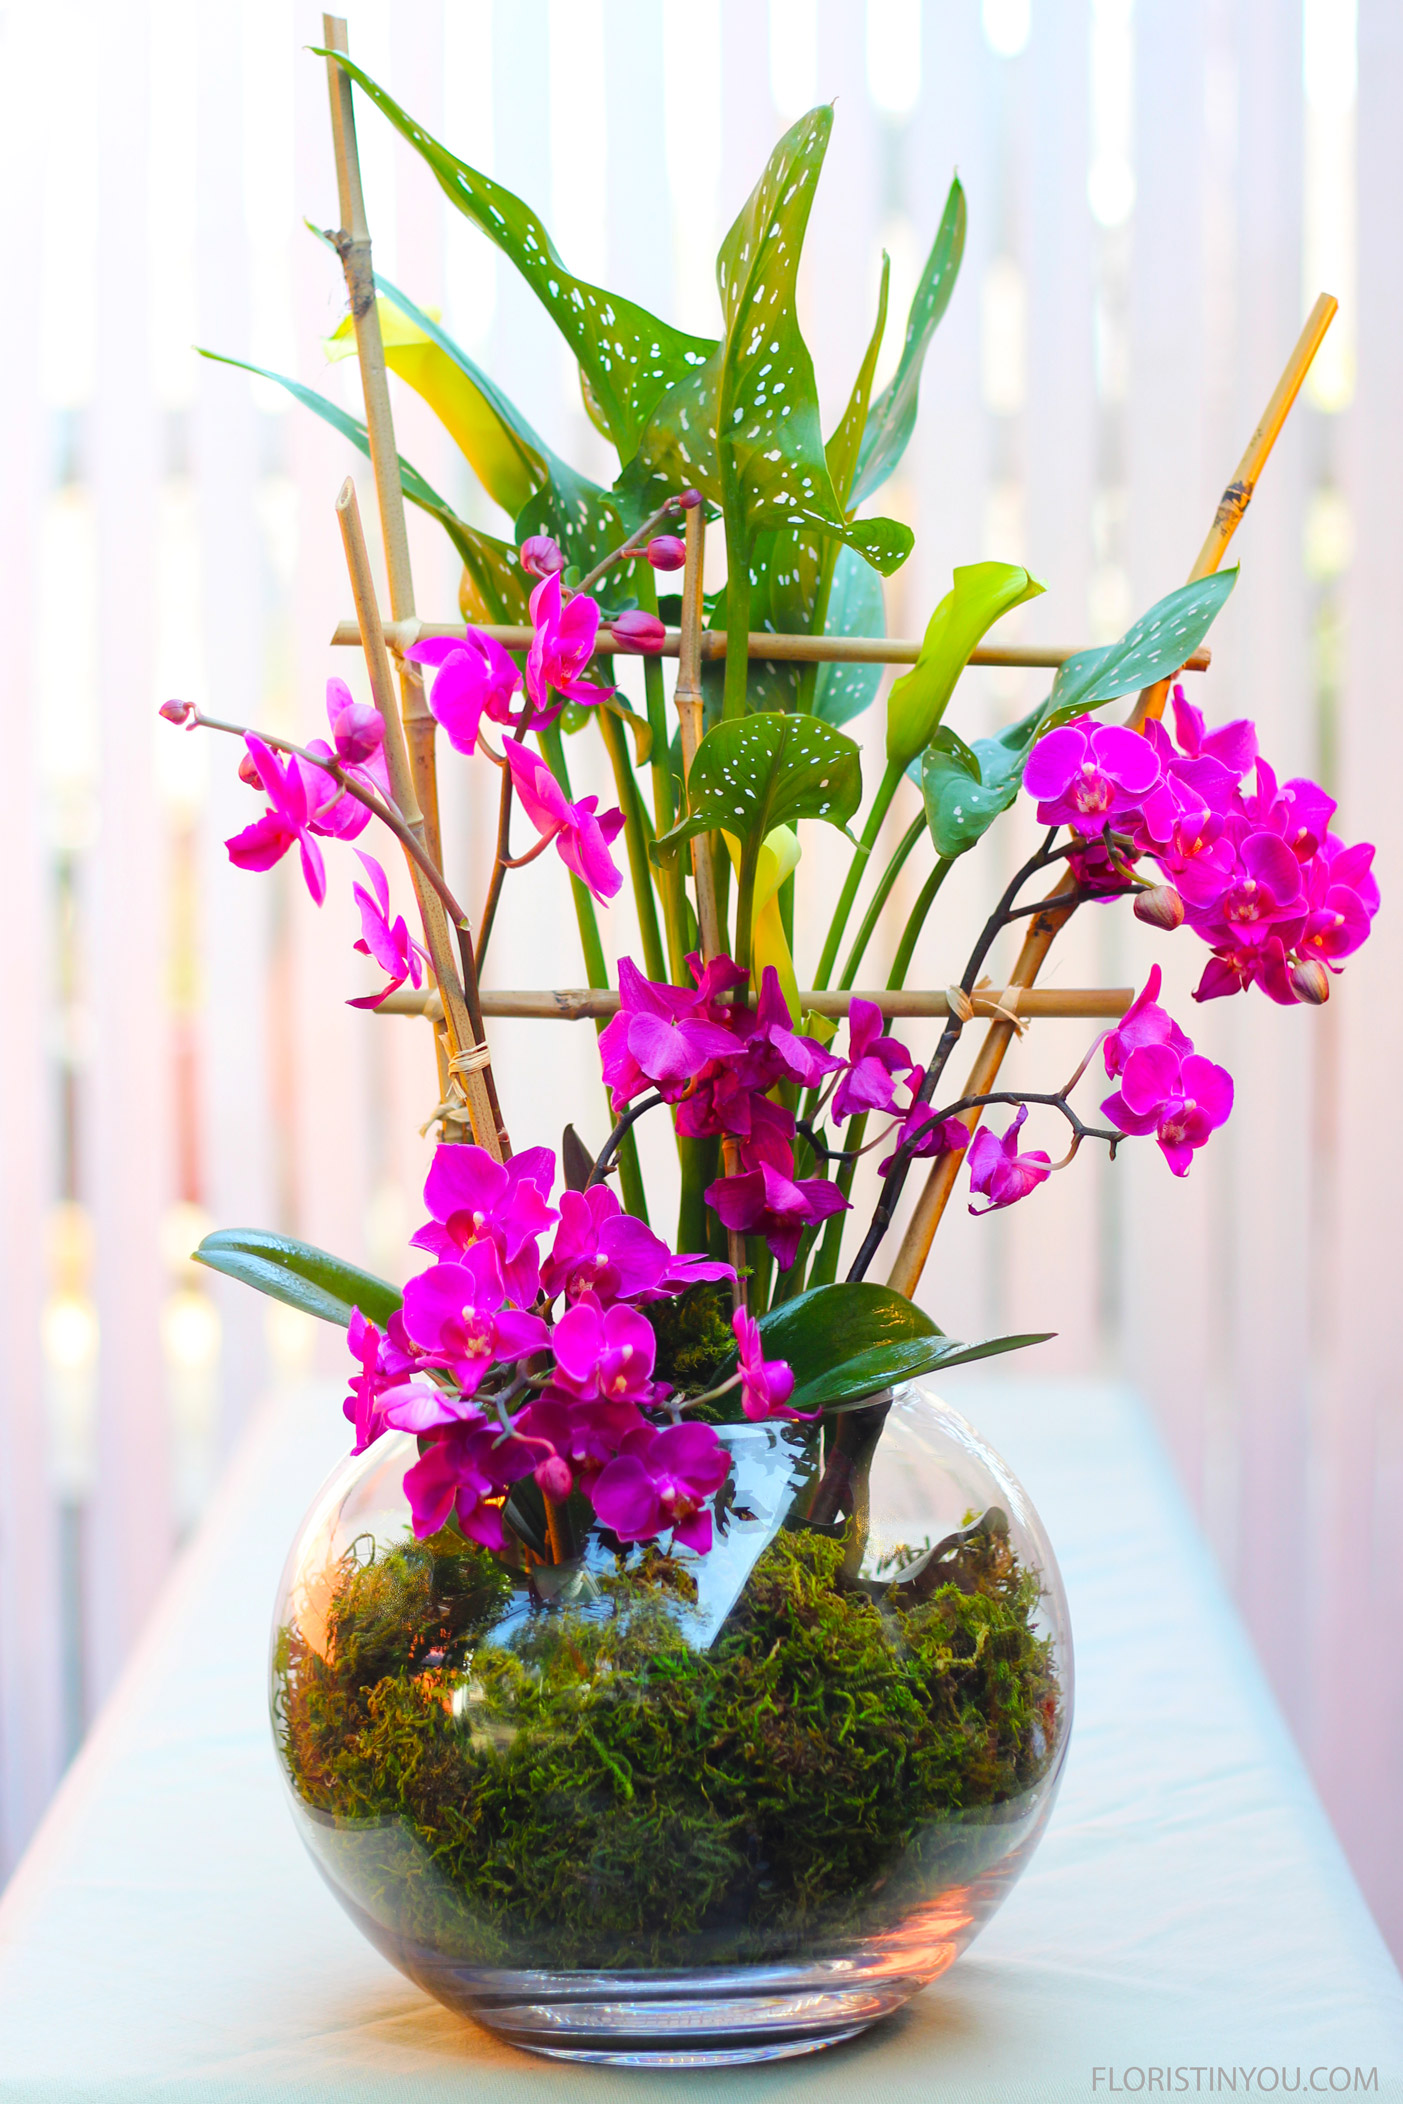 """Orchids in a Bubble Bowl                     Normal   0           false   false   false     EN-US   JA   X-NONE                                                                                                                                                                                                                                                                                                                                                                              /* Style Definitions */ table.MsoNormalTable {mso-style-name:""""Table Normal""""; mso-tstyle-rowband-size:0; mso-tstyle-colband-size:0; mso-style-noshow:yes; mso-style-priority:99; mso-style-parent:""""""""; mso-padding-alt:0in 5.4pt 0in 5.4pt; mso-para-margin:0in; mso-para-margin-bottom:.0001pt; mso-pagination:widow-orphan; font-size:12.0pt; font-family:Cambria; mso-ascii-font-family:Cambria; mso-ascii-theme-font:minor-latin; mso-hansi-font-family:Cambria; mso-hansi-theme-font:minor-latin;}"""